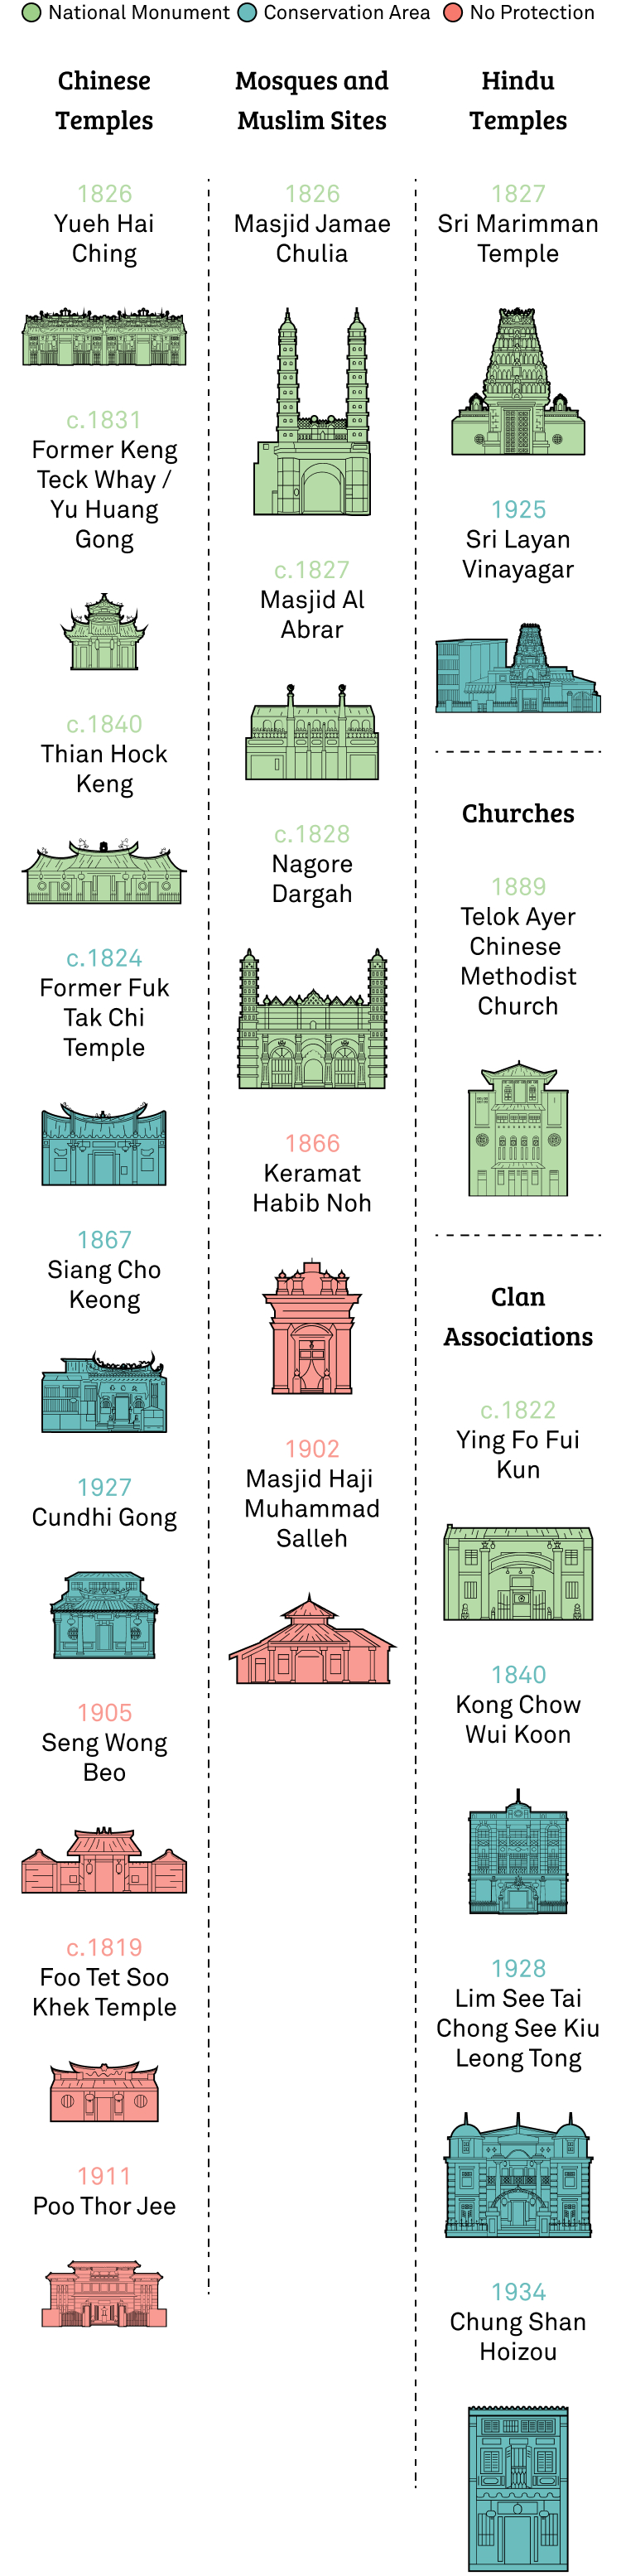 Singapore's historic sites of worship: Communities in a changing city